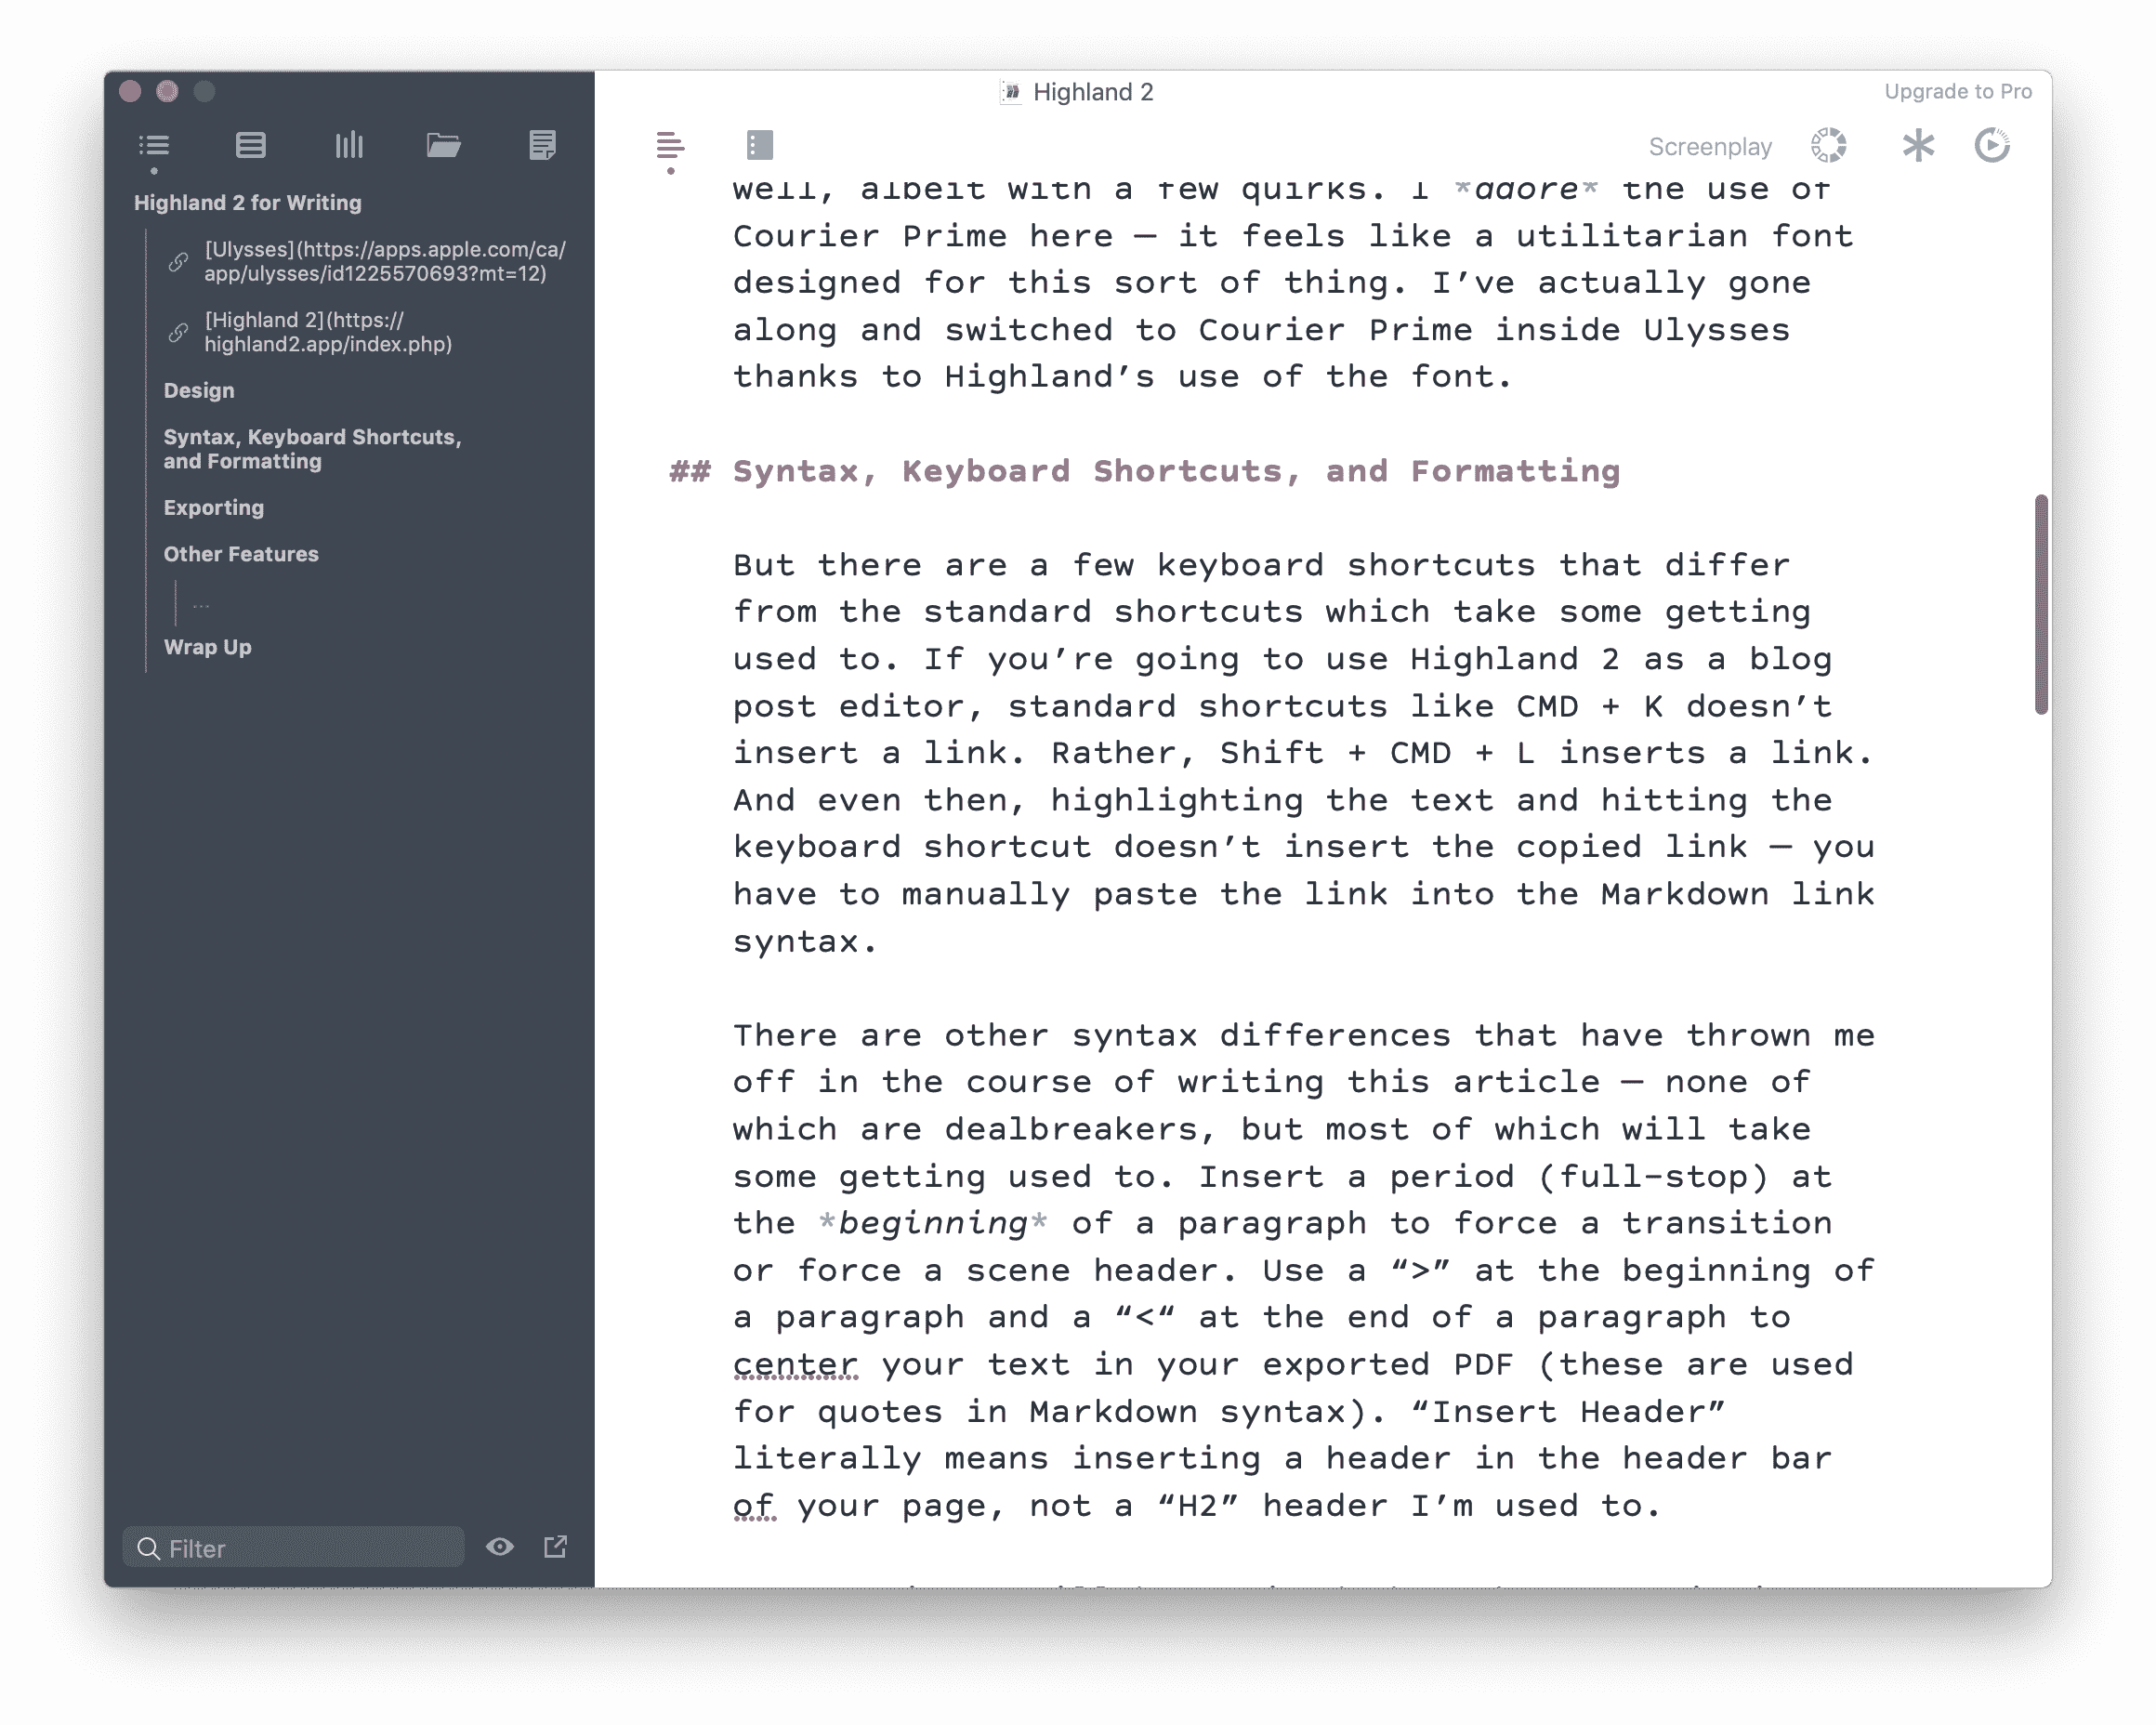 Highland 2 Is a Screenwriting App That Can Handle All Kinds